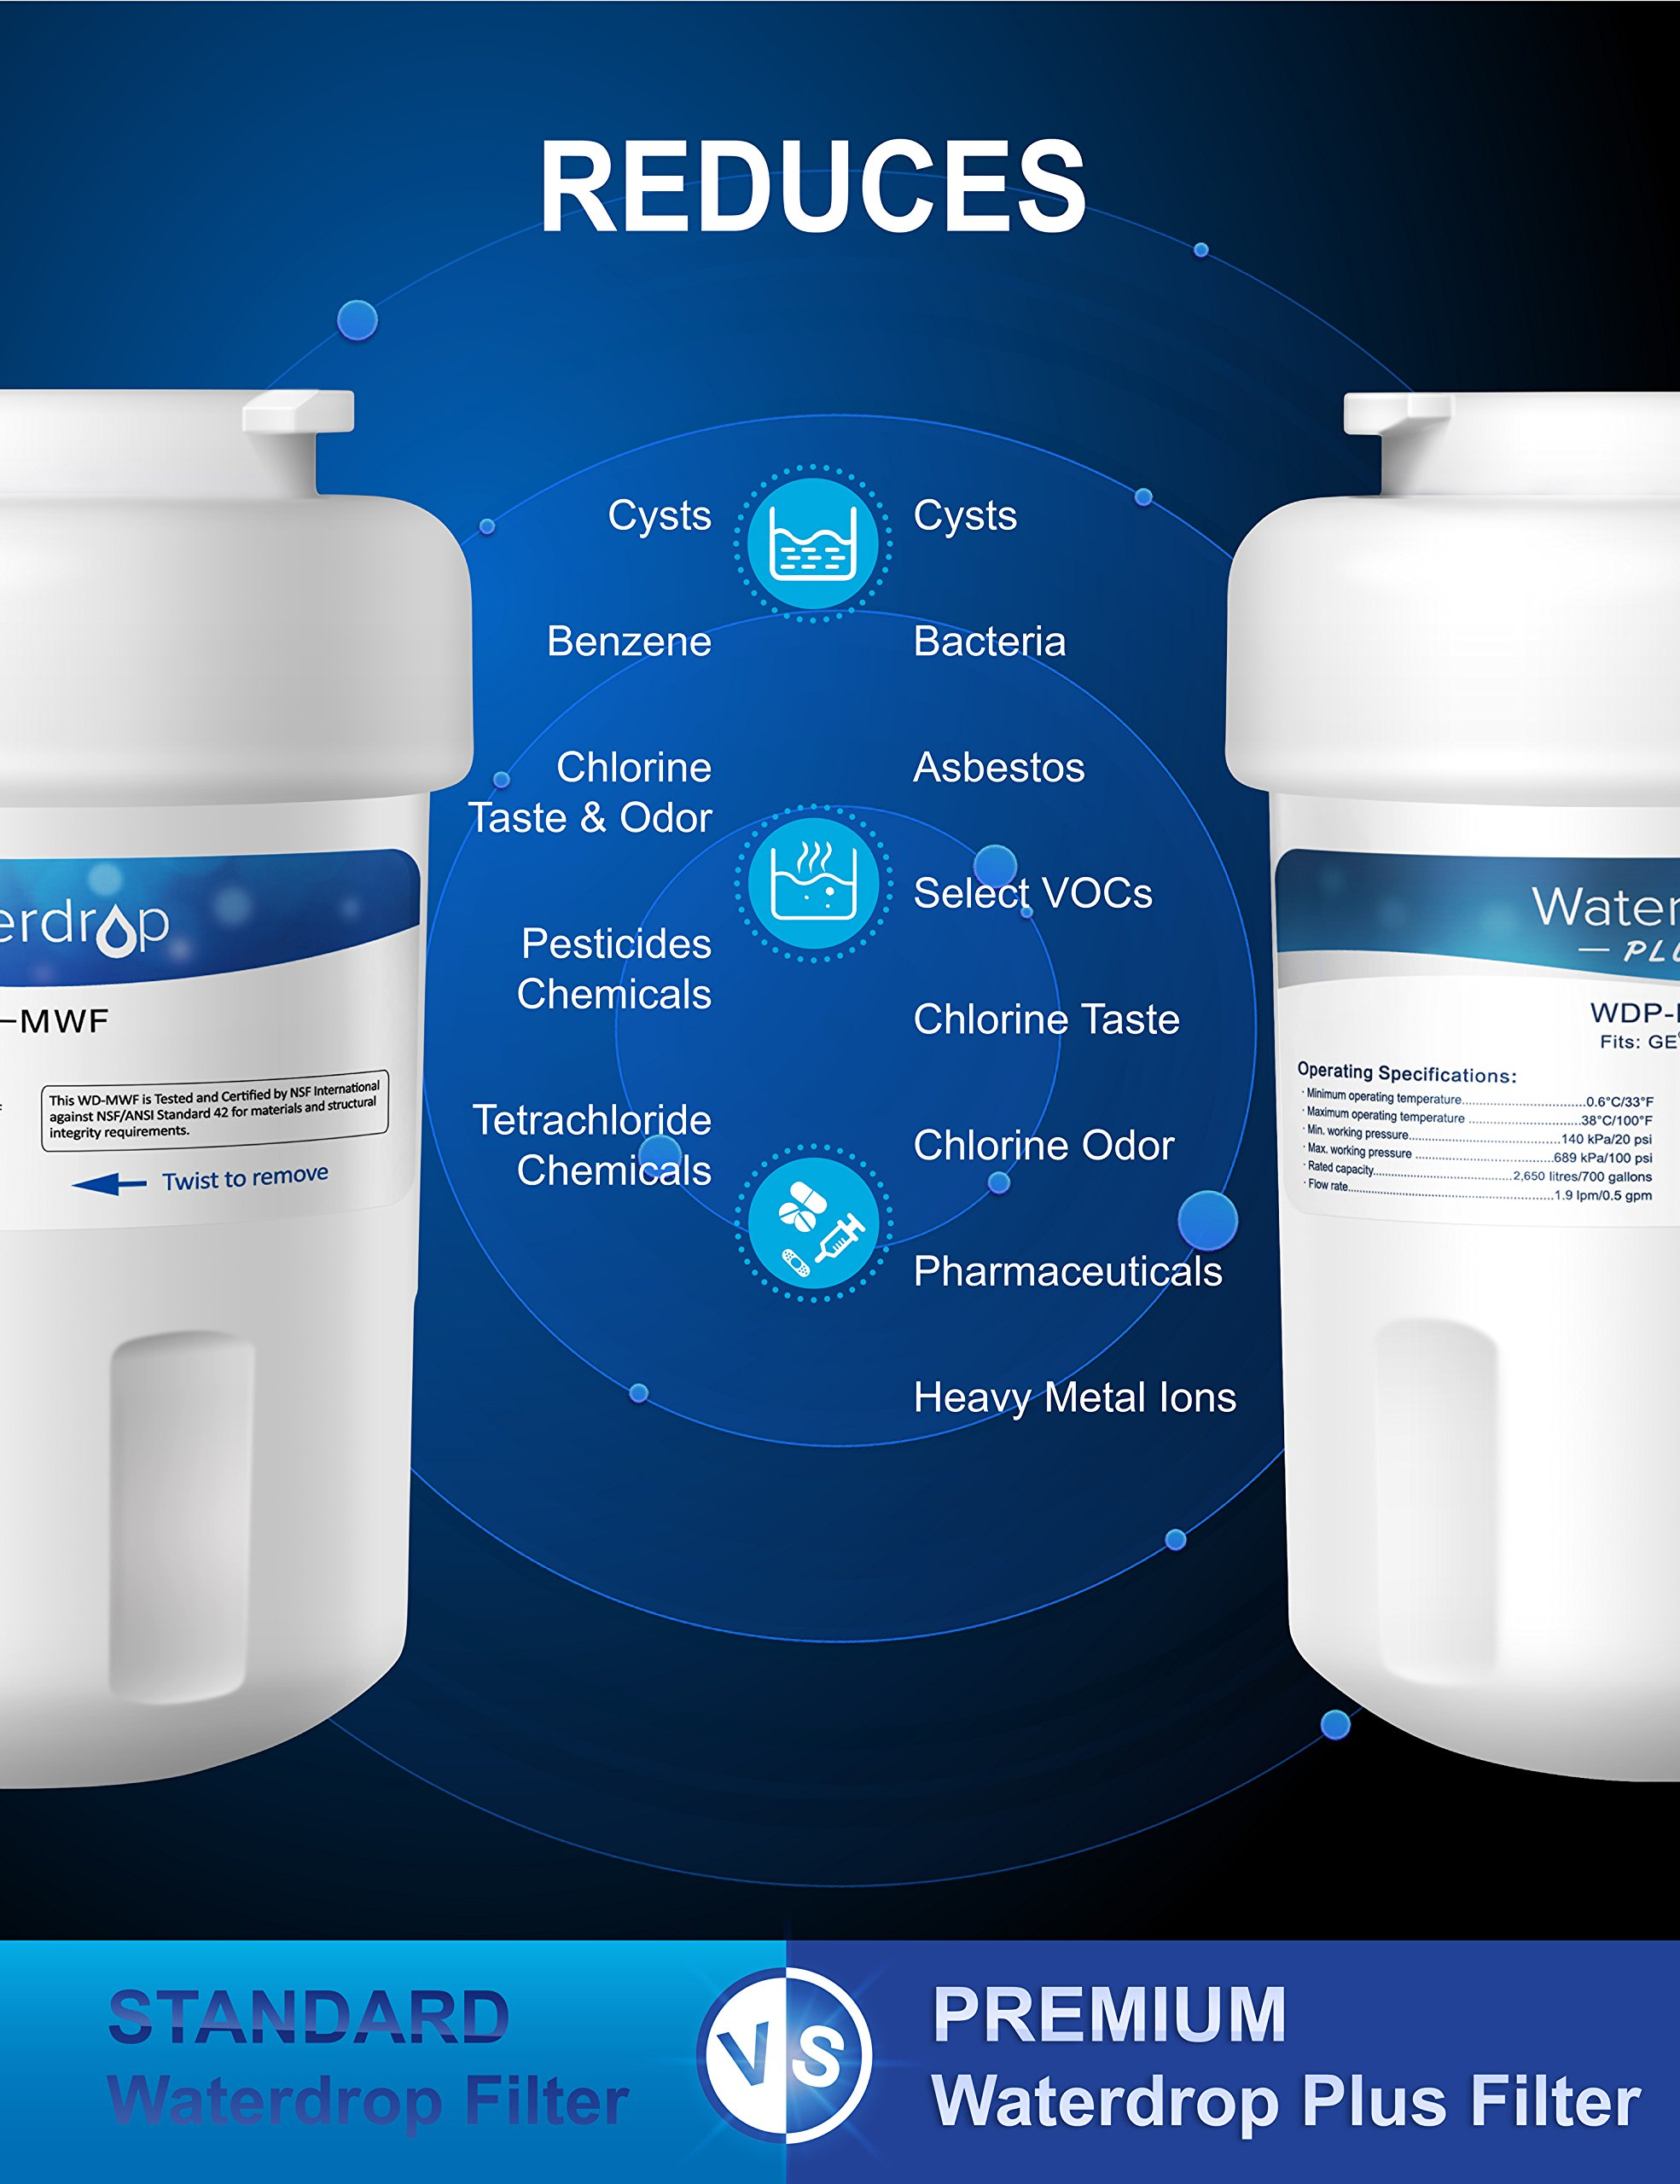 Waterdrop Plus MWF Double Lifetime Replacement Refrigerator Water Filter, Compatible with GE MWF, MWFP, MWFA, GWF, GWFA, SmartWater, Kenmore 9991, 46-9991, 469991 (2 Pack) by Waterdrop (Image #4)